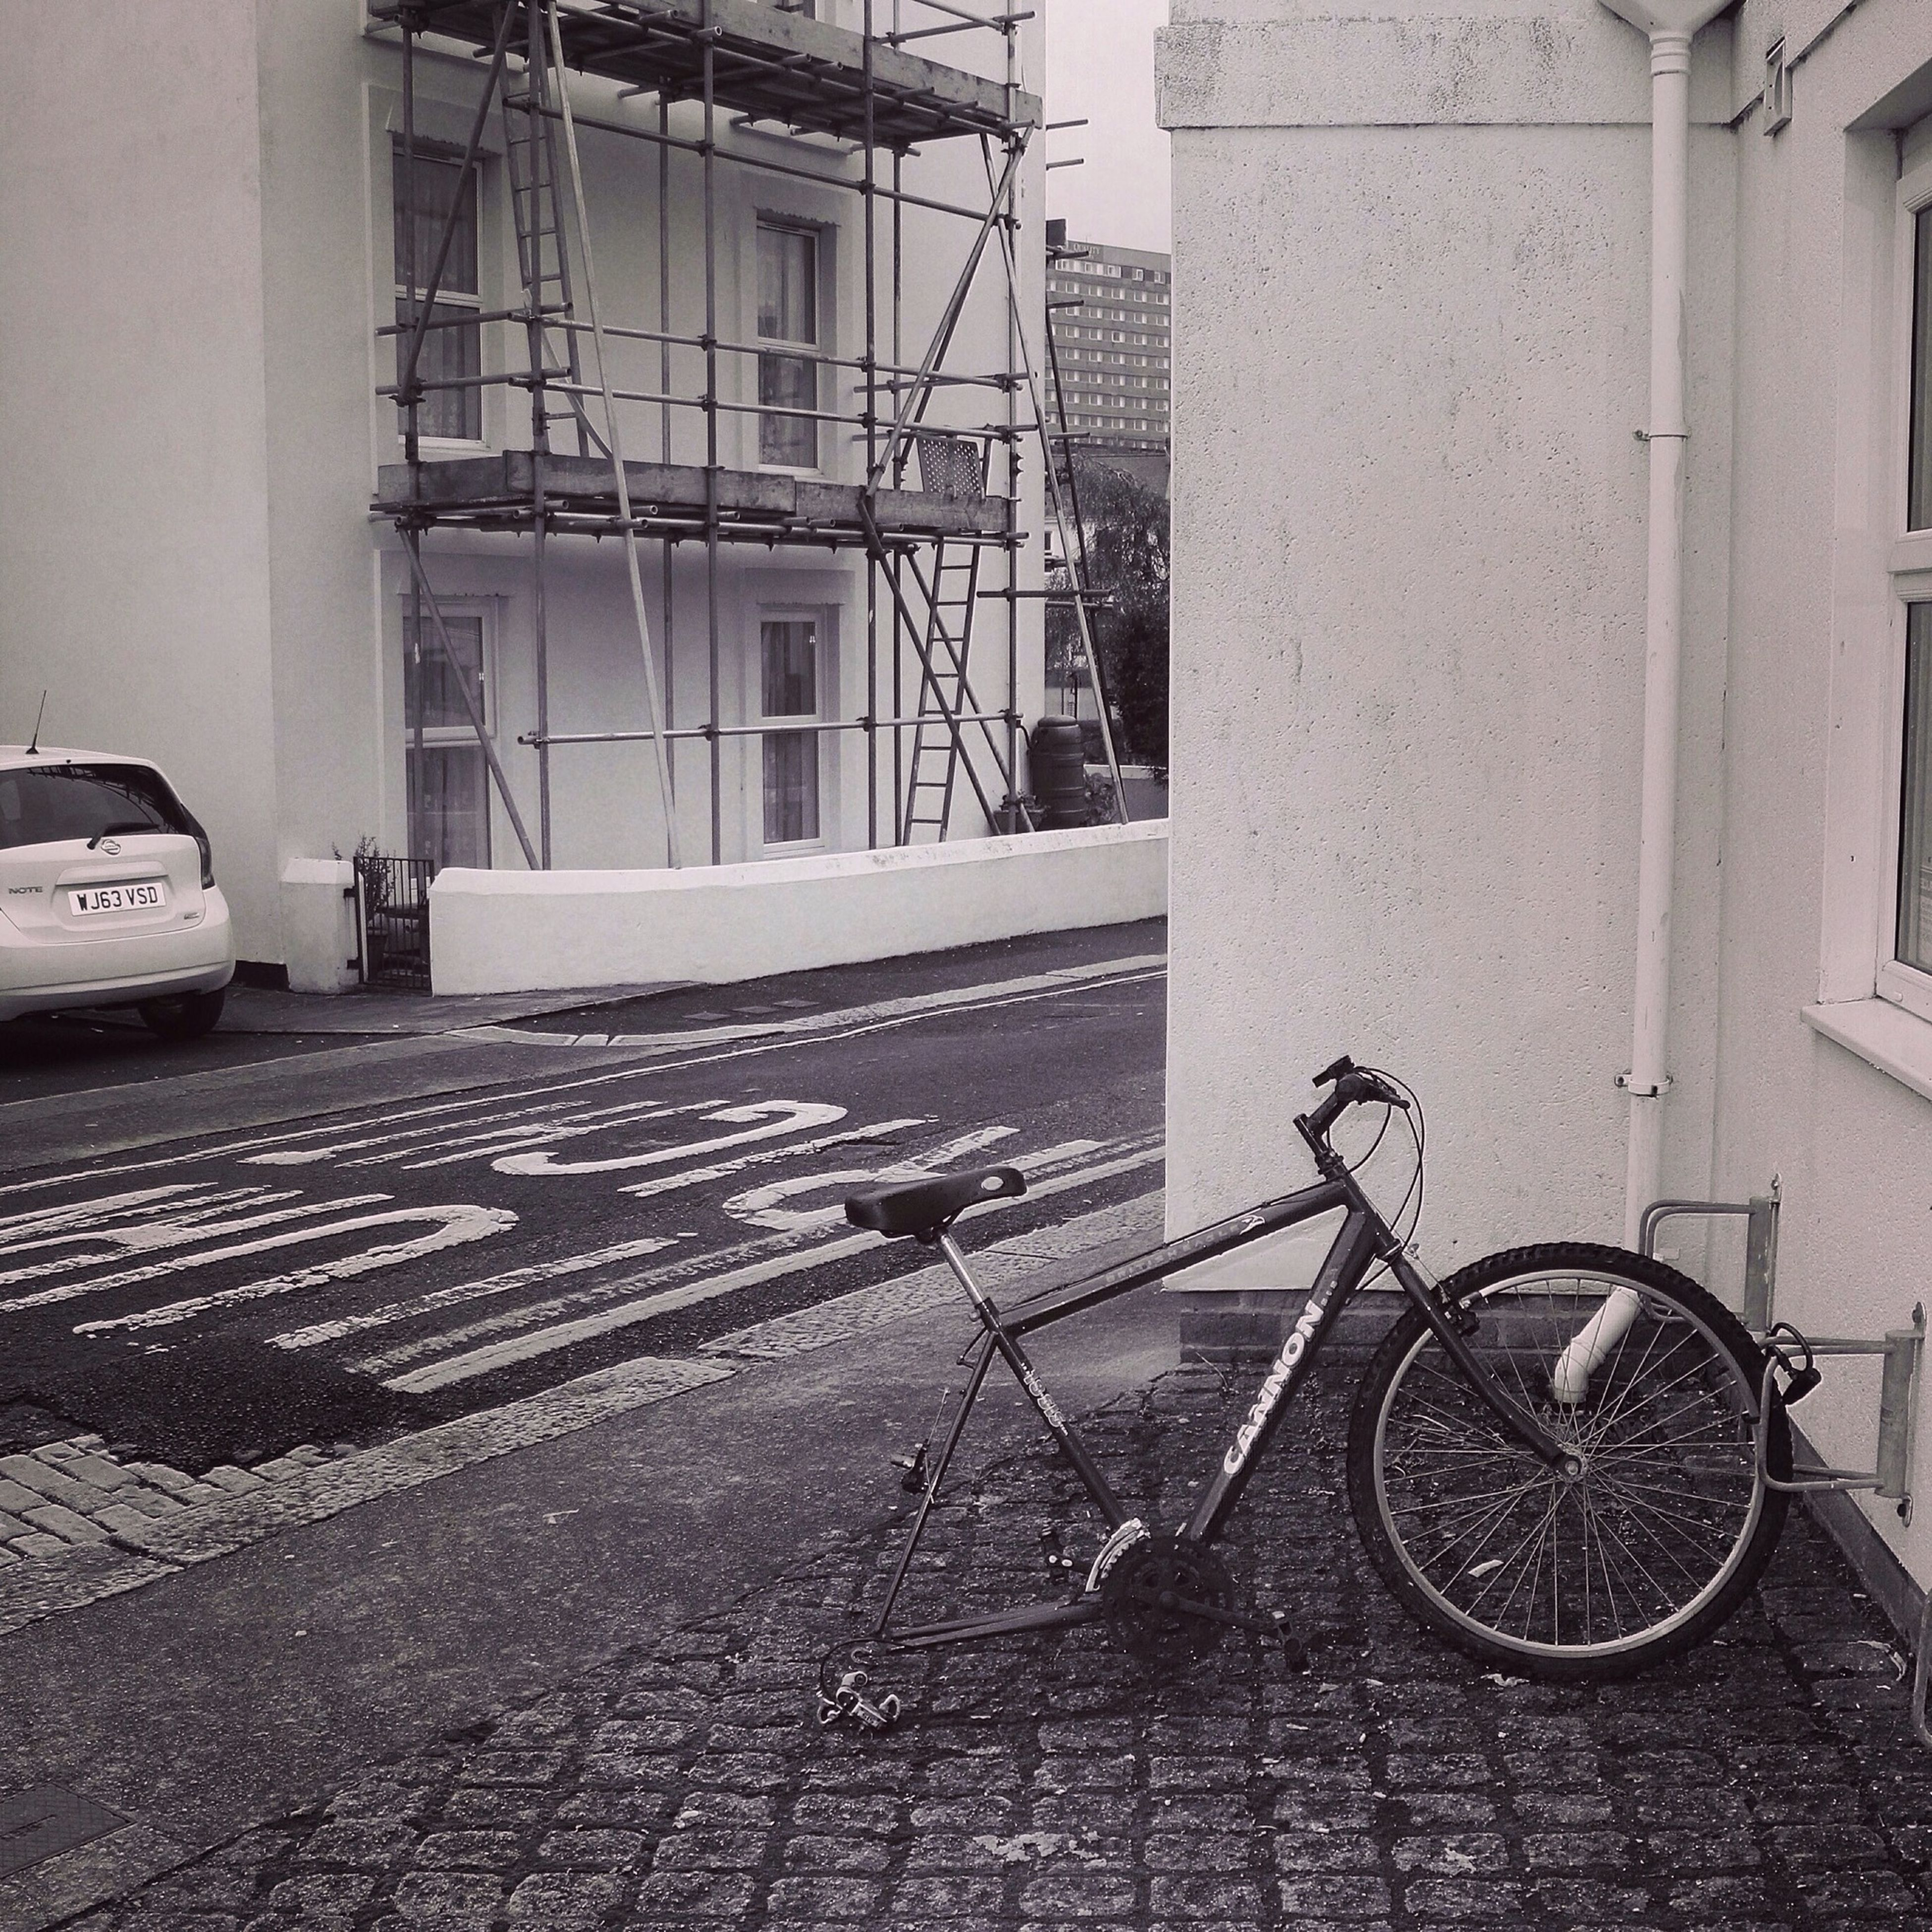 building exterior, architecture, built structure, transportation, bicycle, mode of transport, land vehicle, street, parked, stationary, building, parking, city, cobblestone, day, sidewalk, window, house, residential structure, outdoors